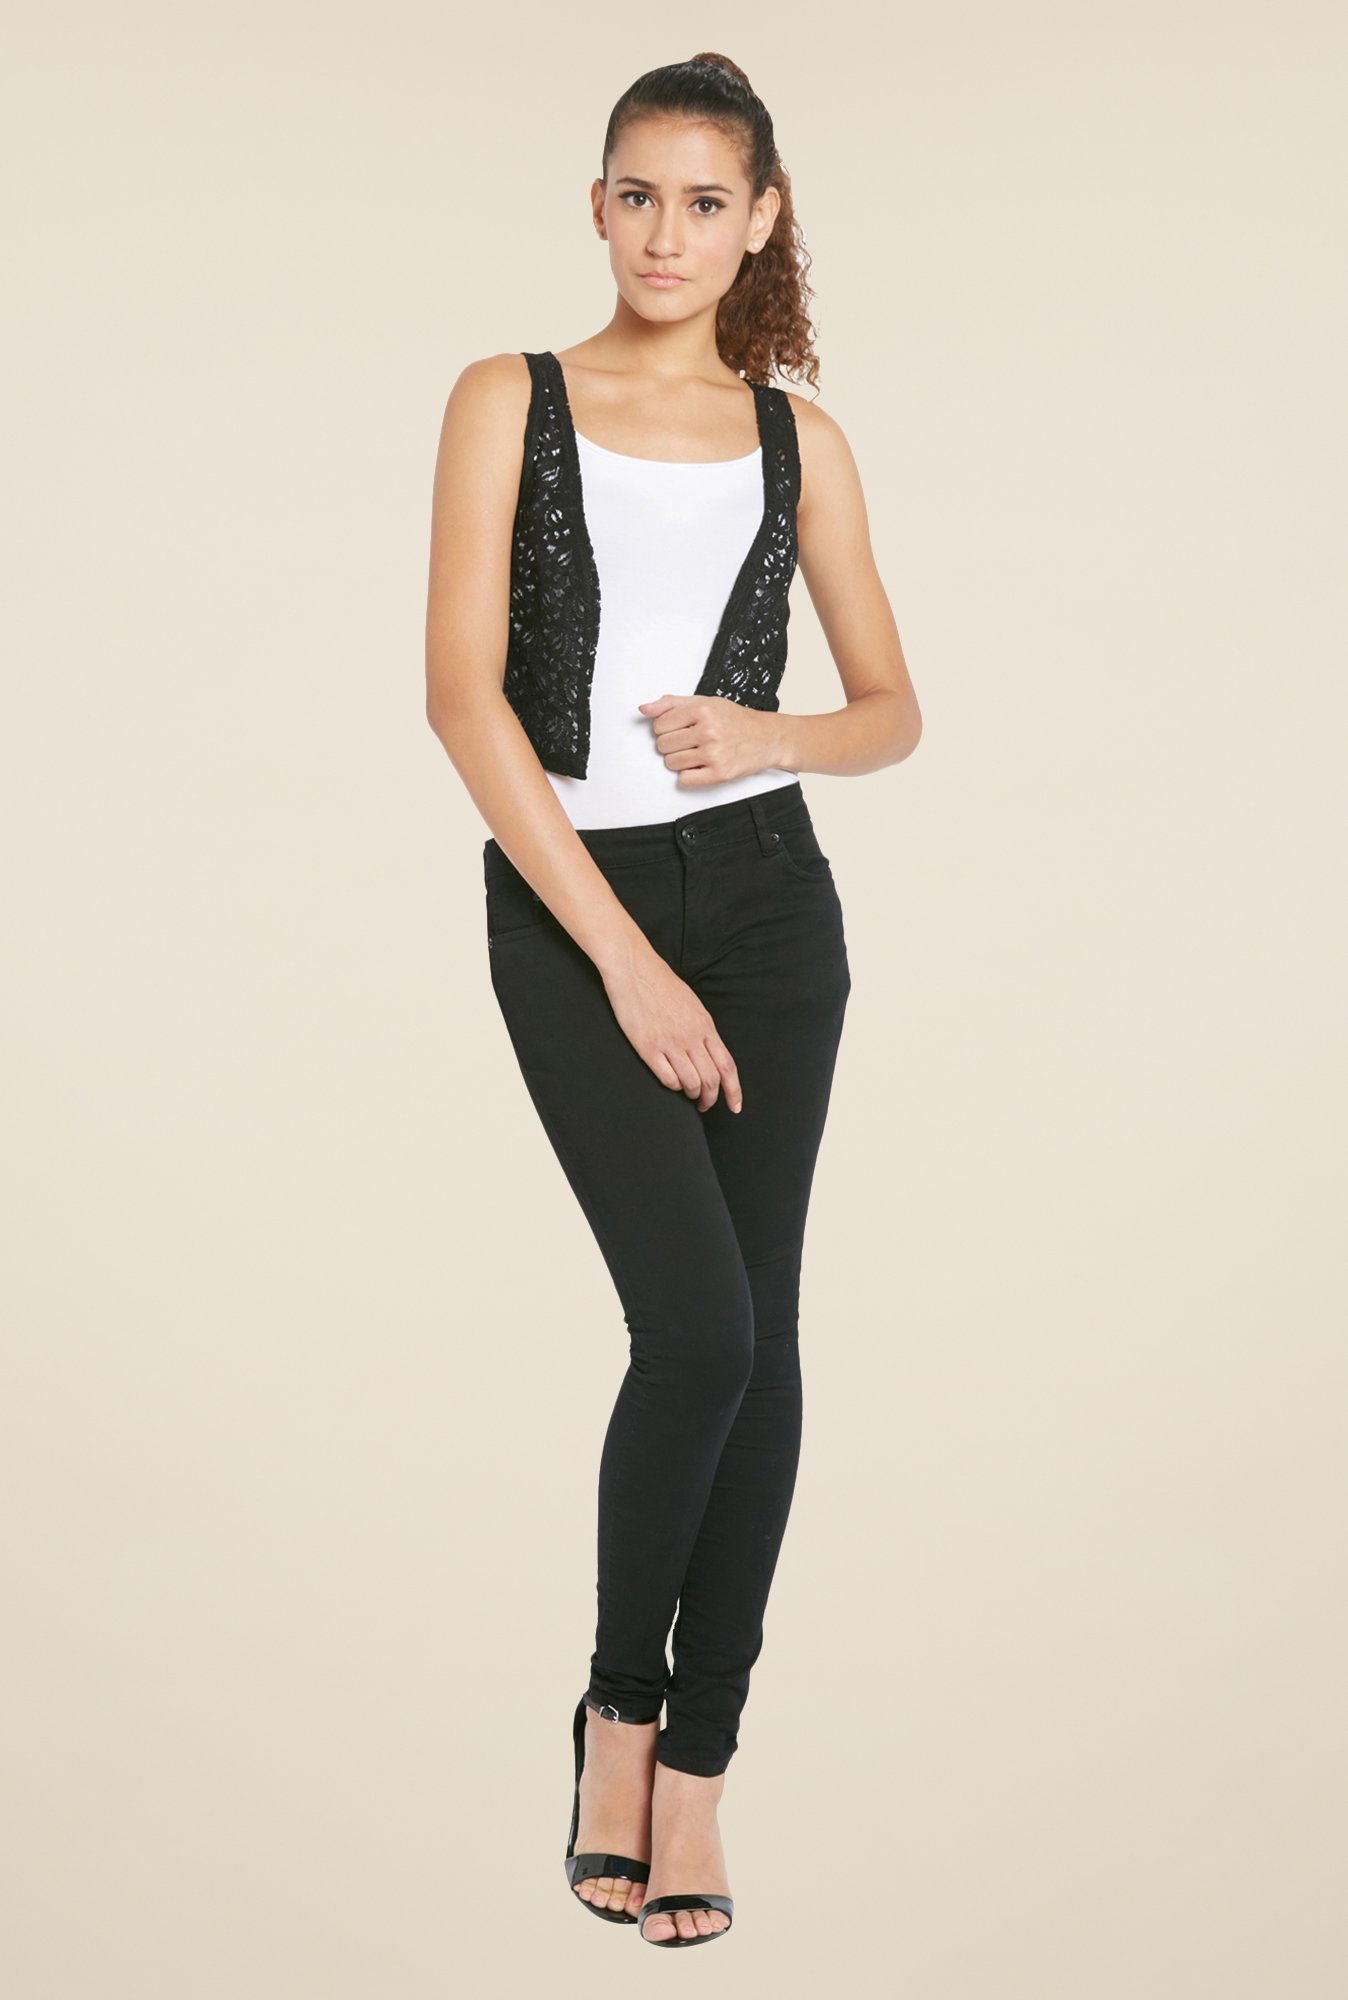 Globus Black Crochet Shrug